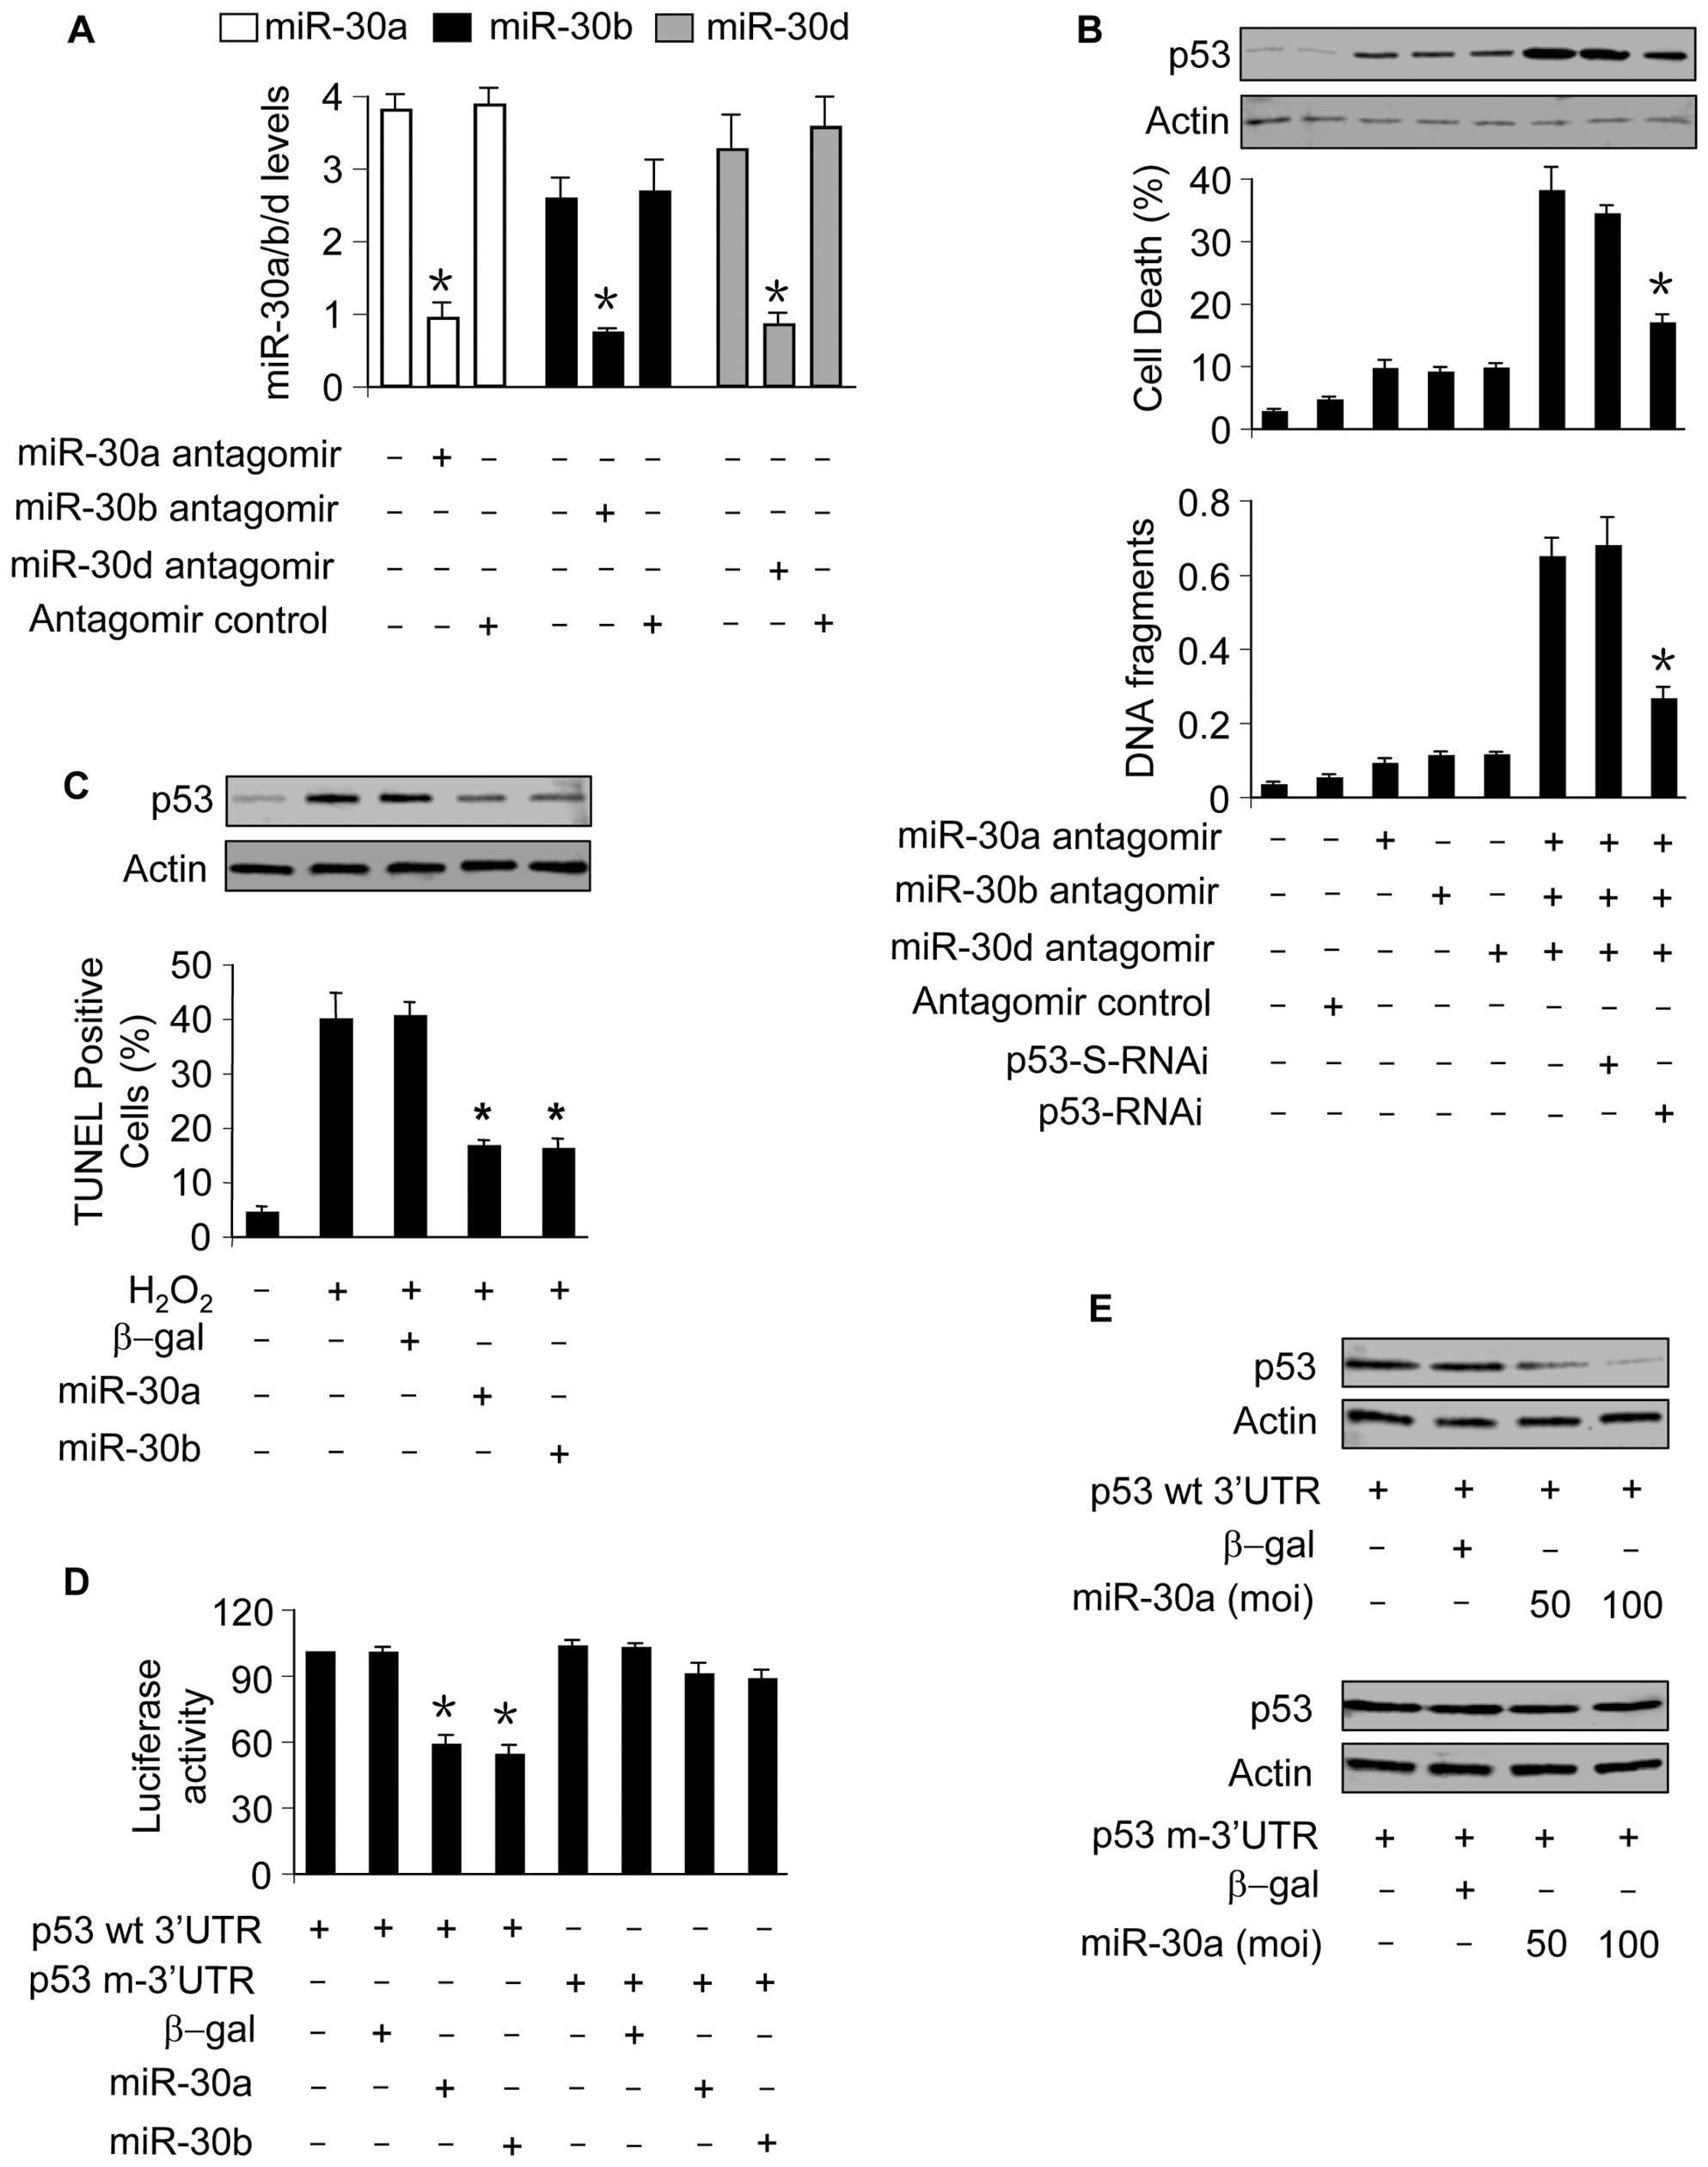 miR-30a, miR-30b, and miR-30d participate in the regulation of p53 expression.